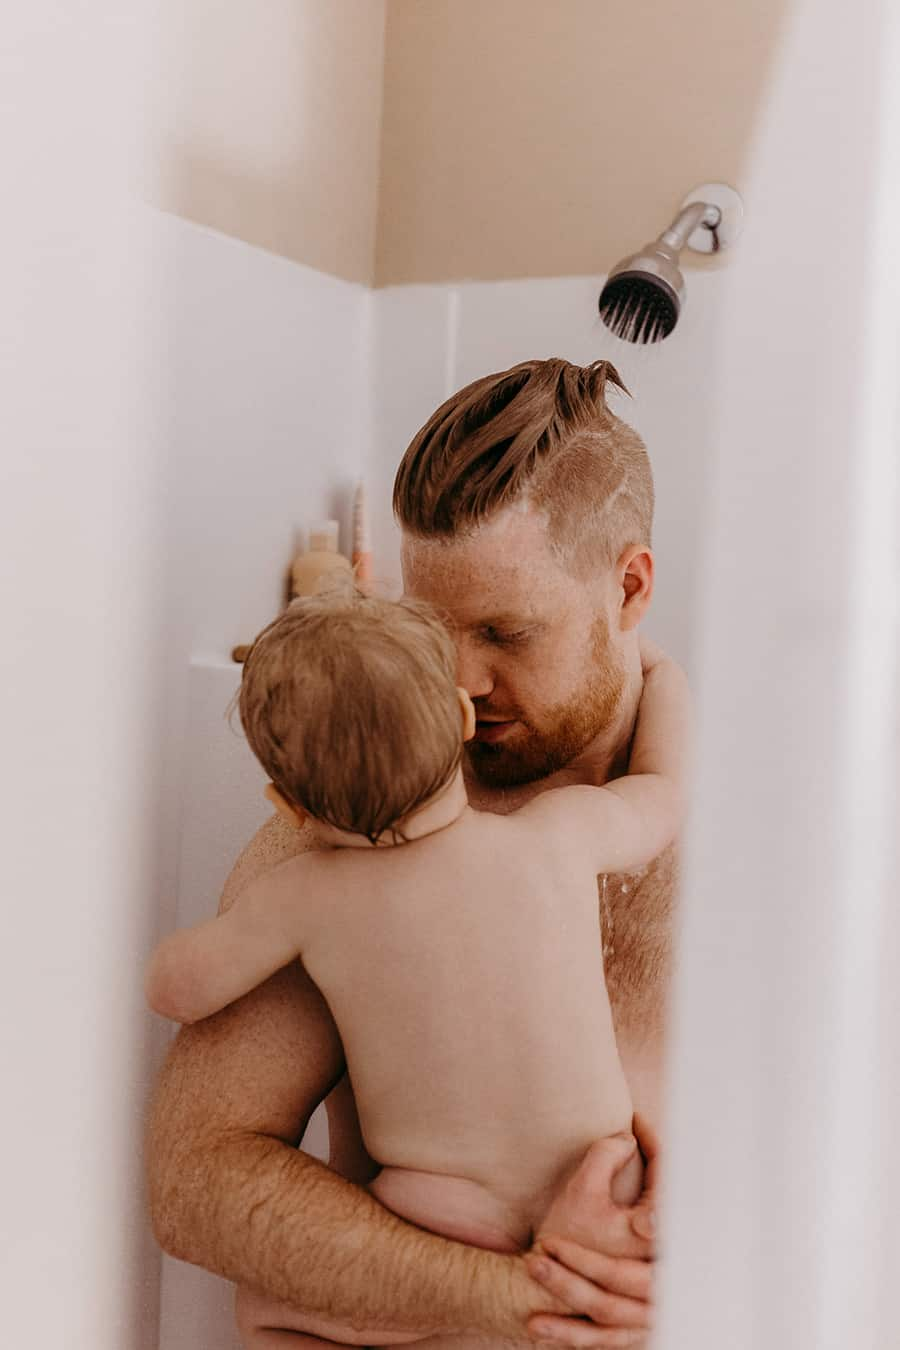 The Best Father's Day Images Ever!